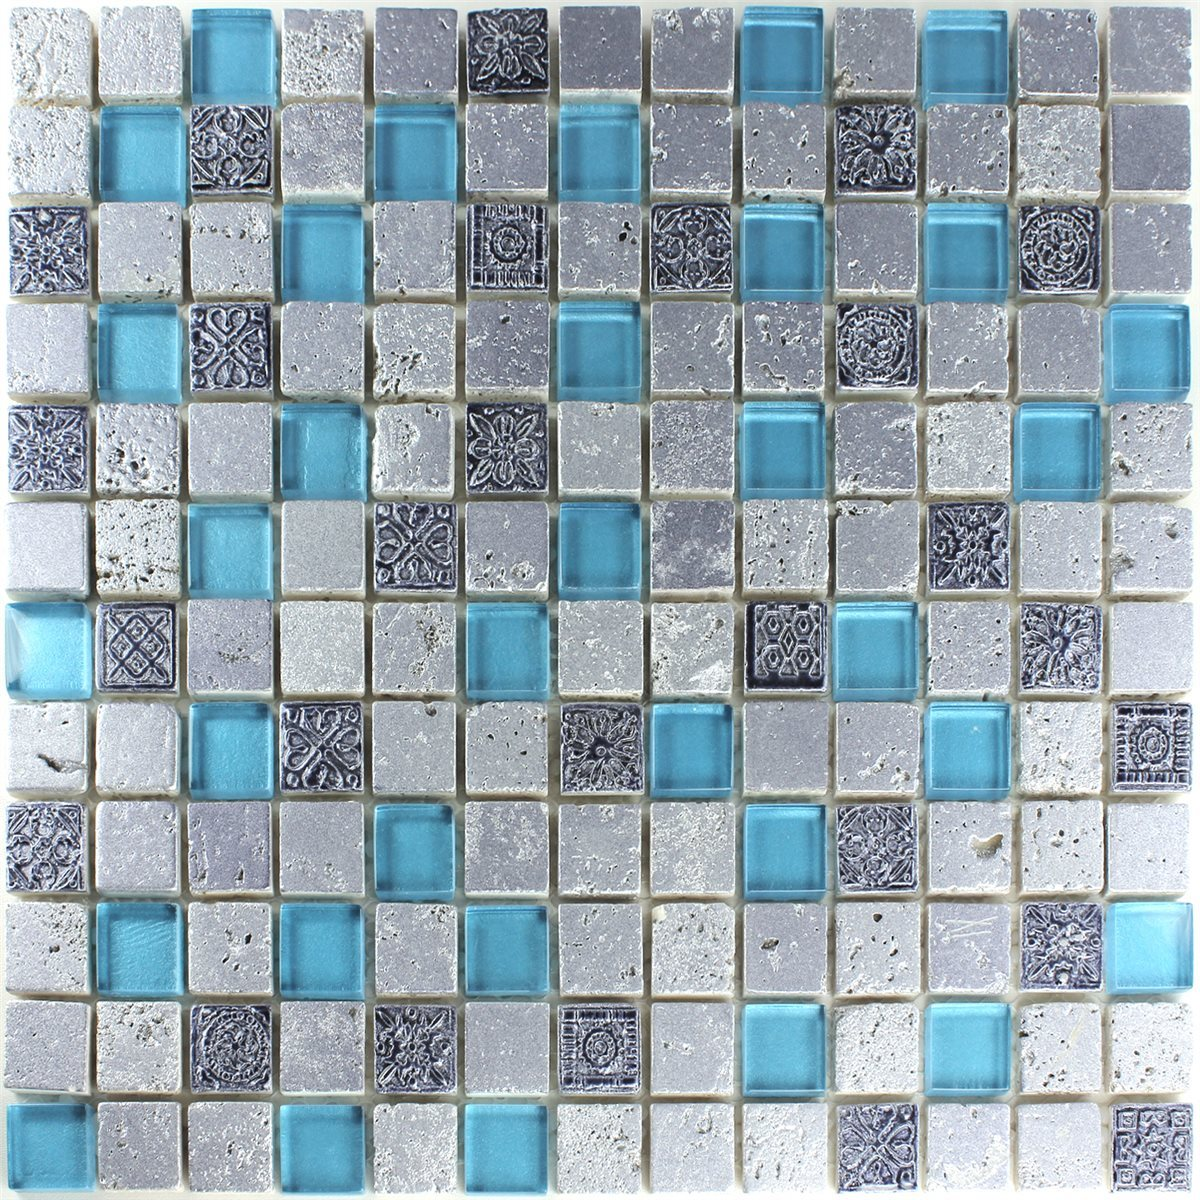 mosaik fliesen glas resin stein mix blau silber tm33162m. Black Bedroom Furniture Sets. Home Design Ideas